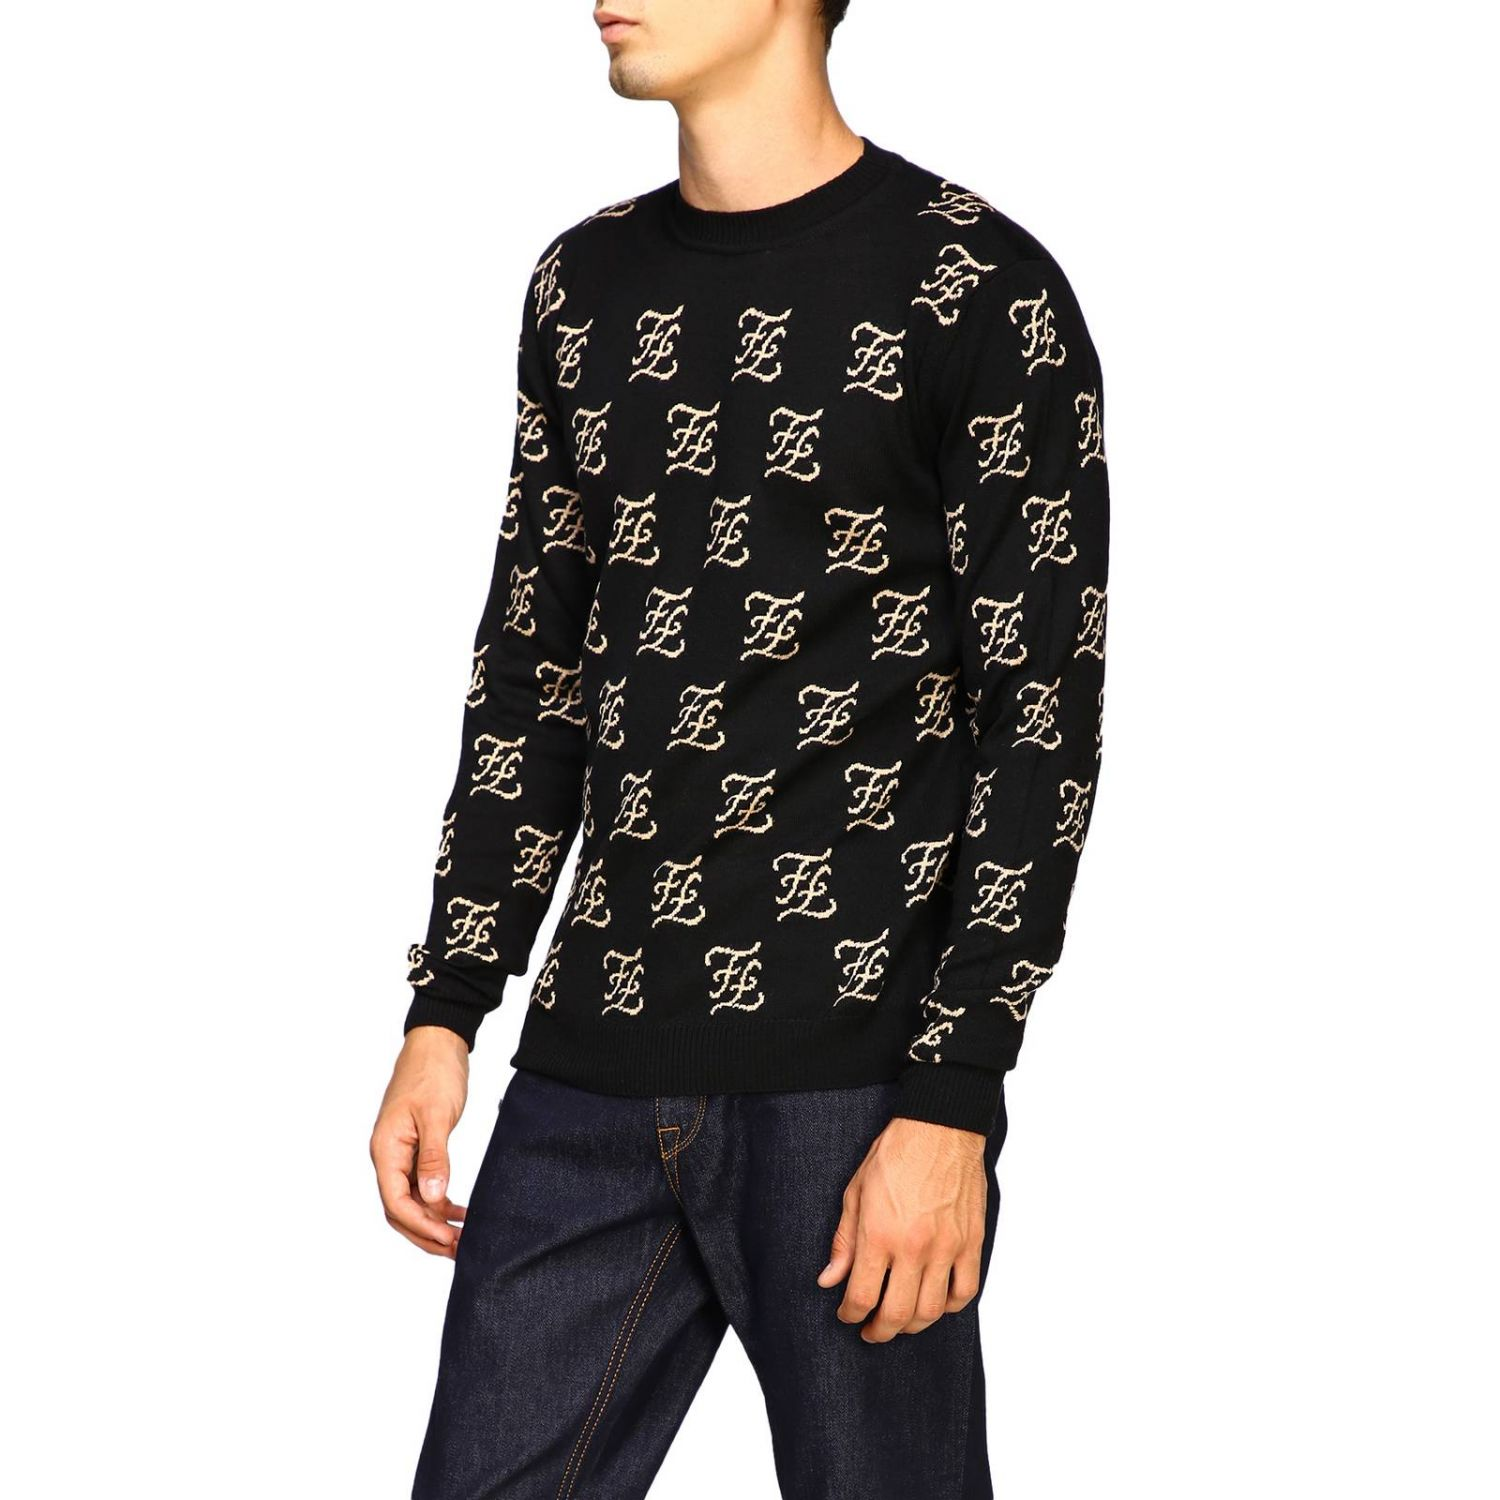 Sweater men Fendi black 4